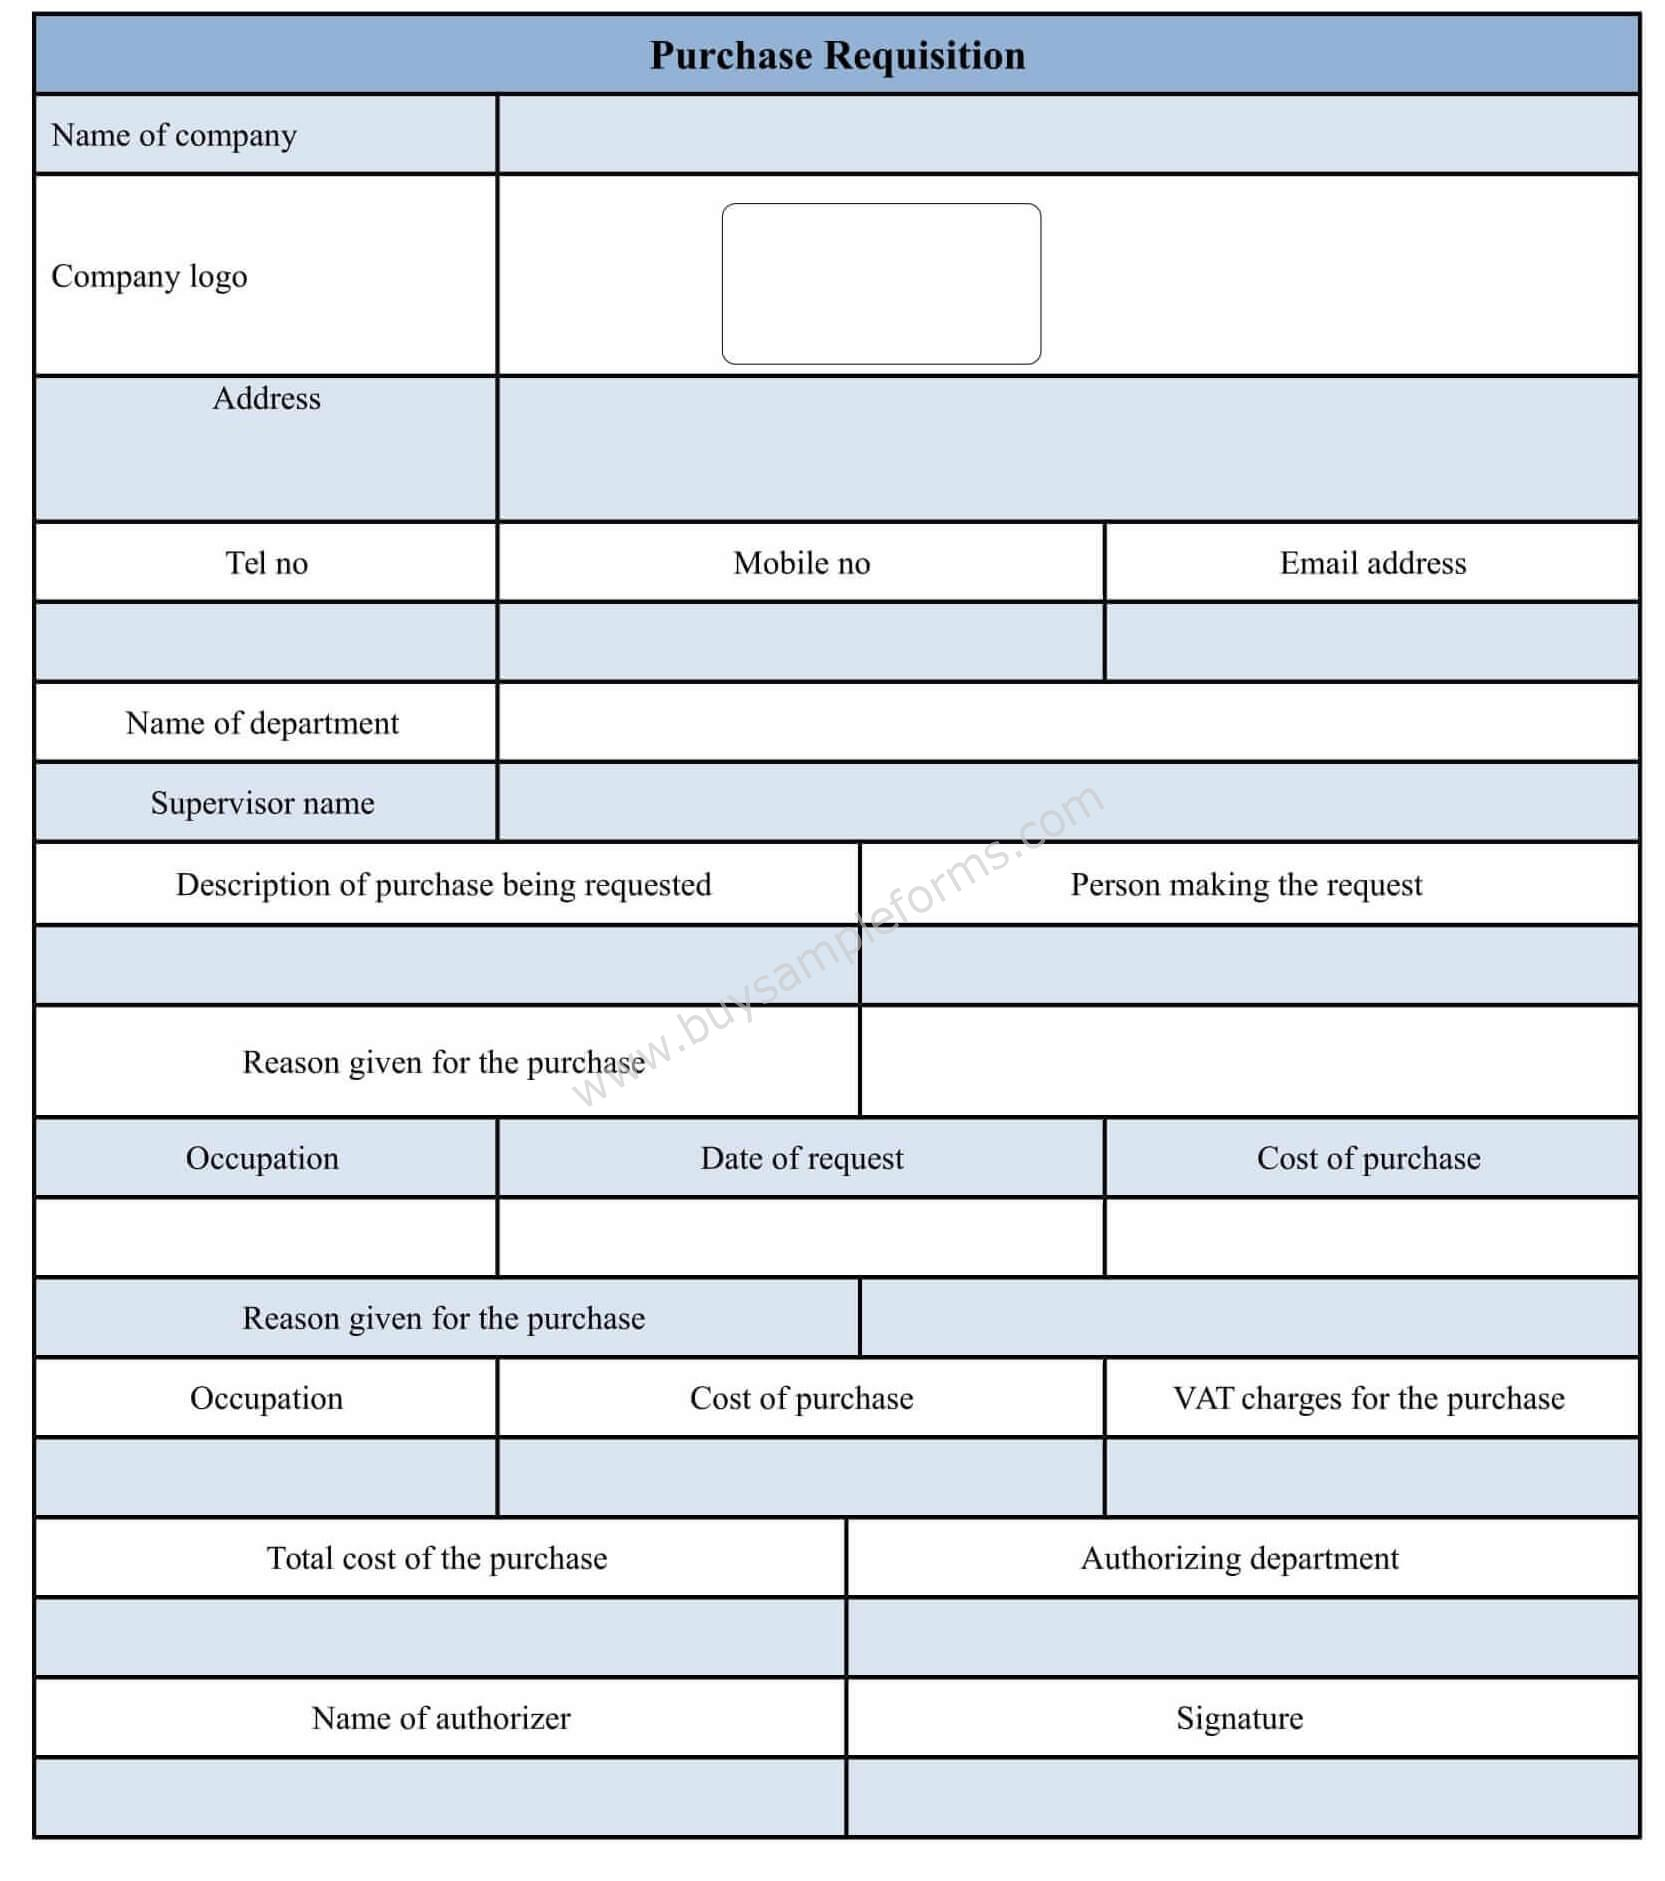 Purchase Requisition Form Template Doc